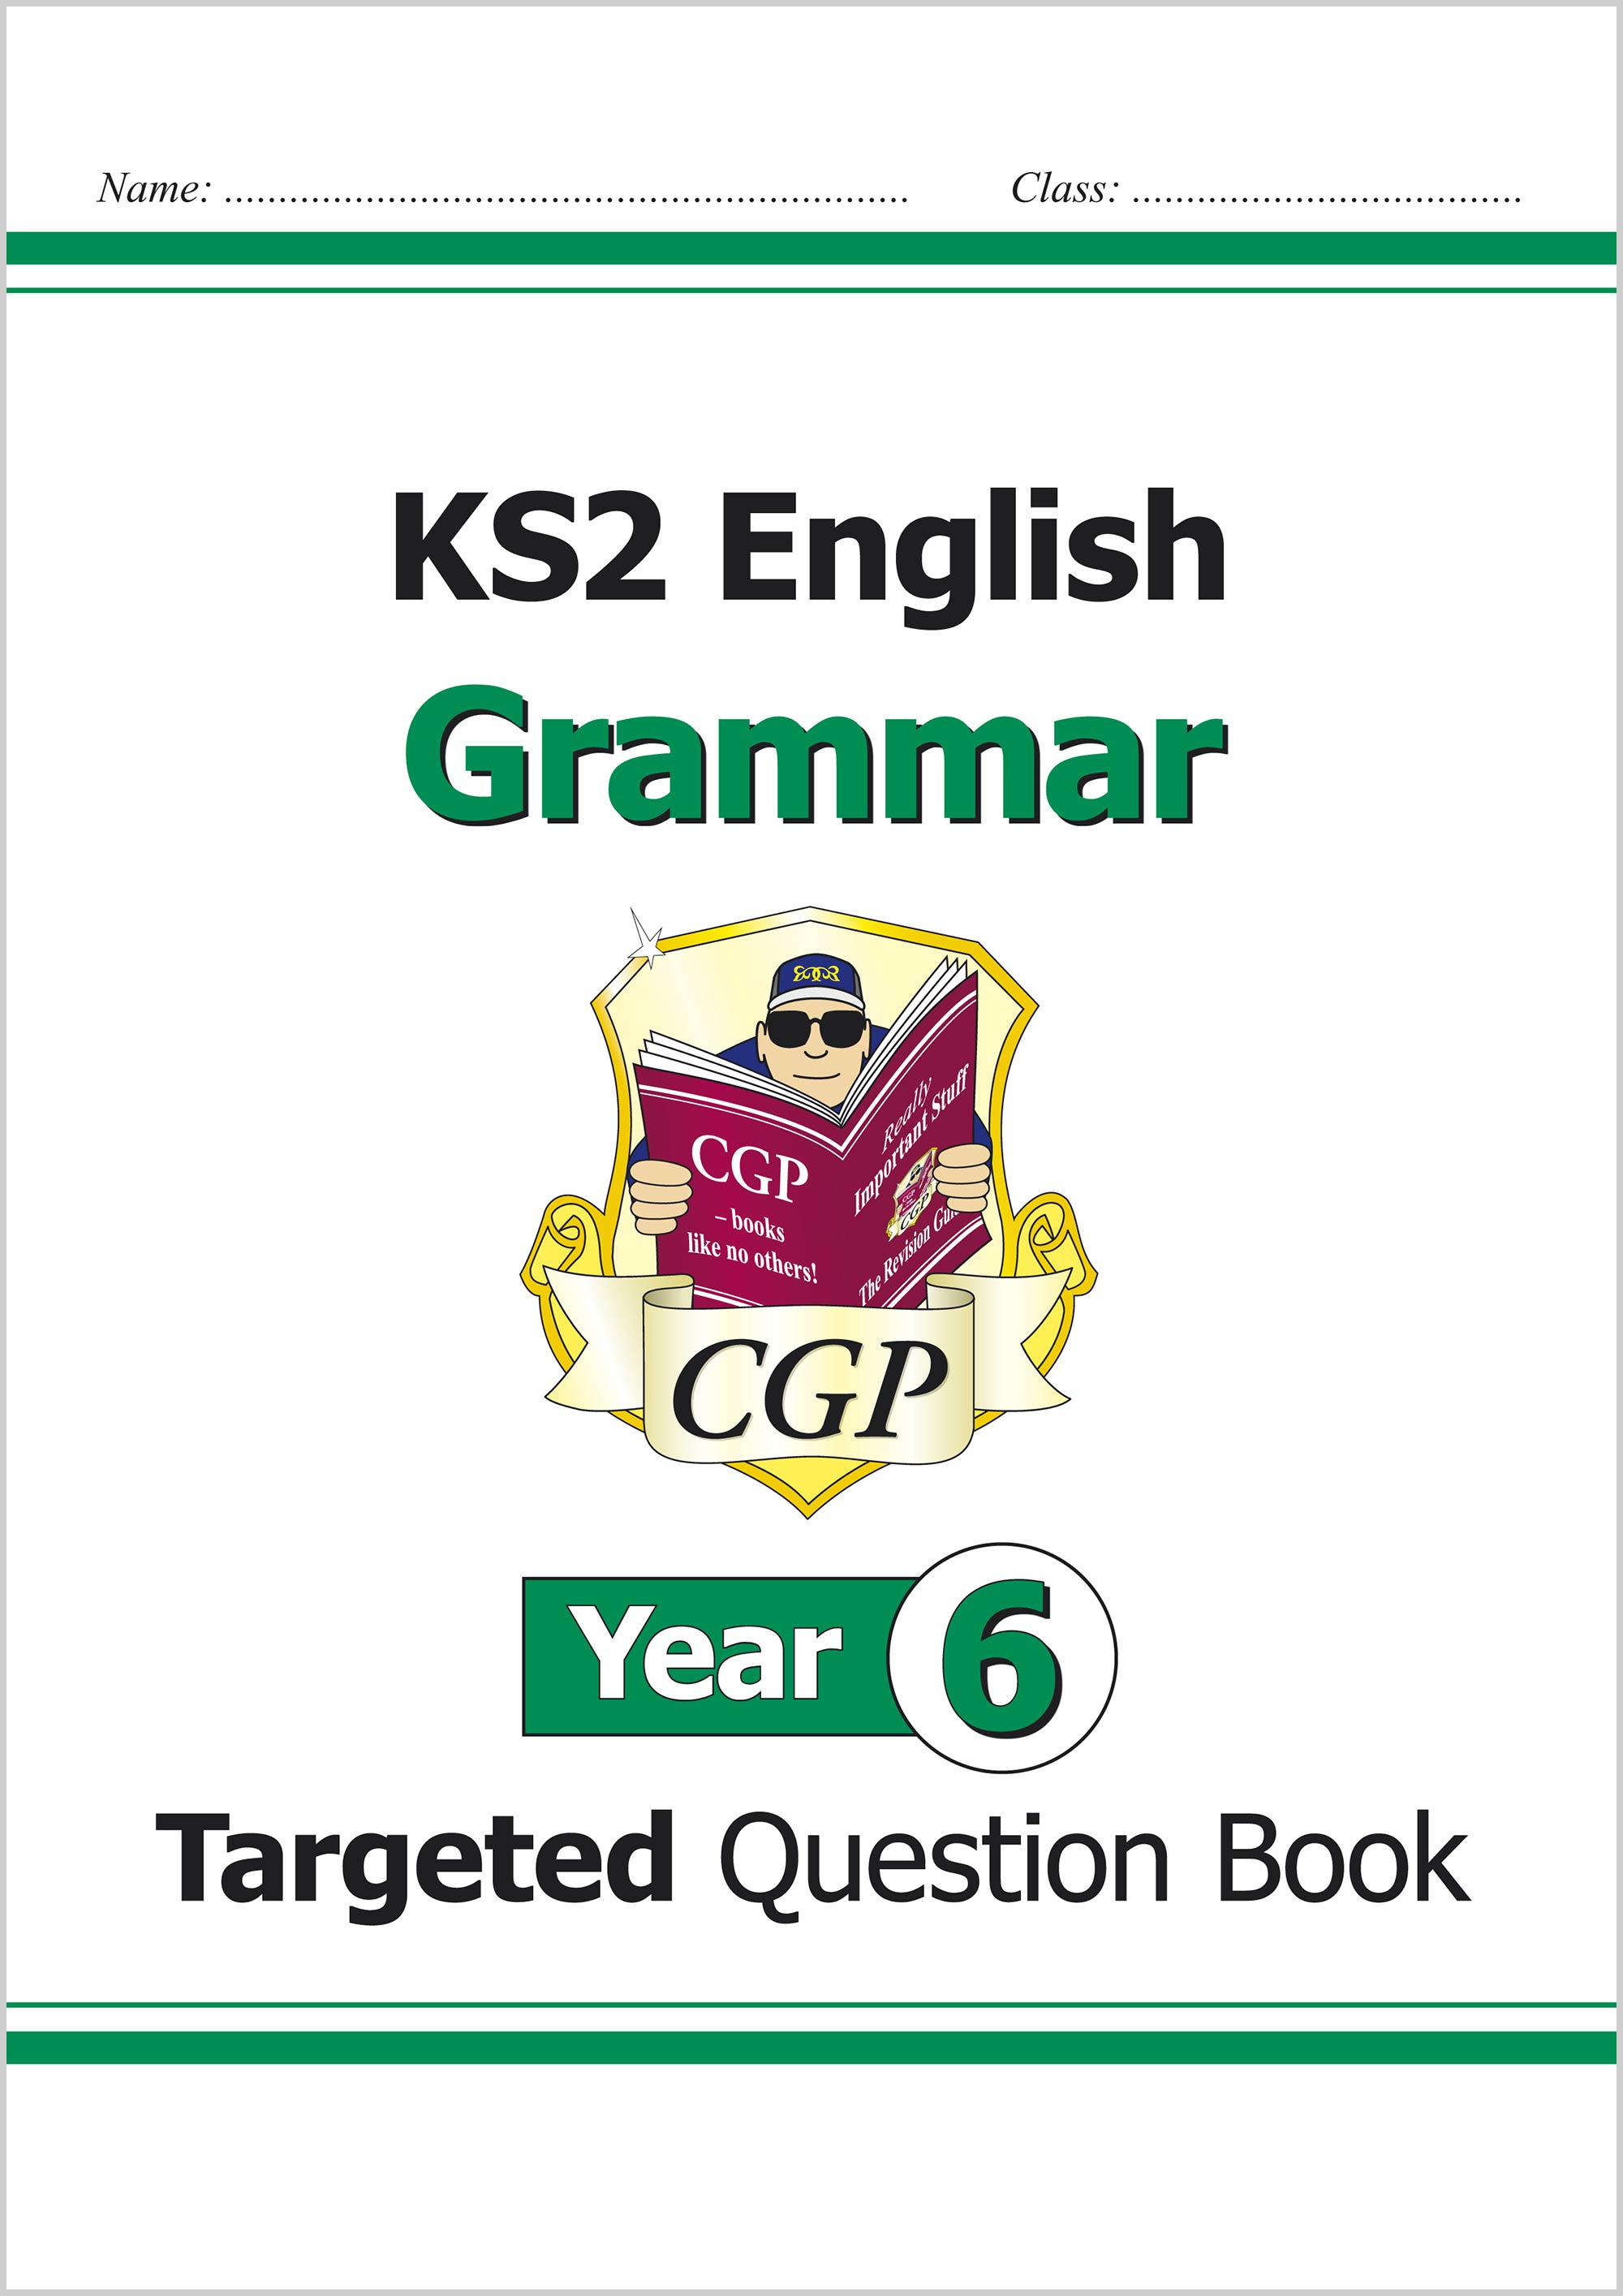 E6GW21 - KS2 English Targeted Question Book: Grammar - Year 6